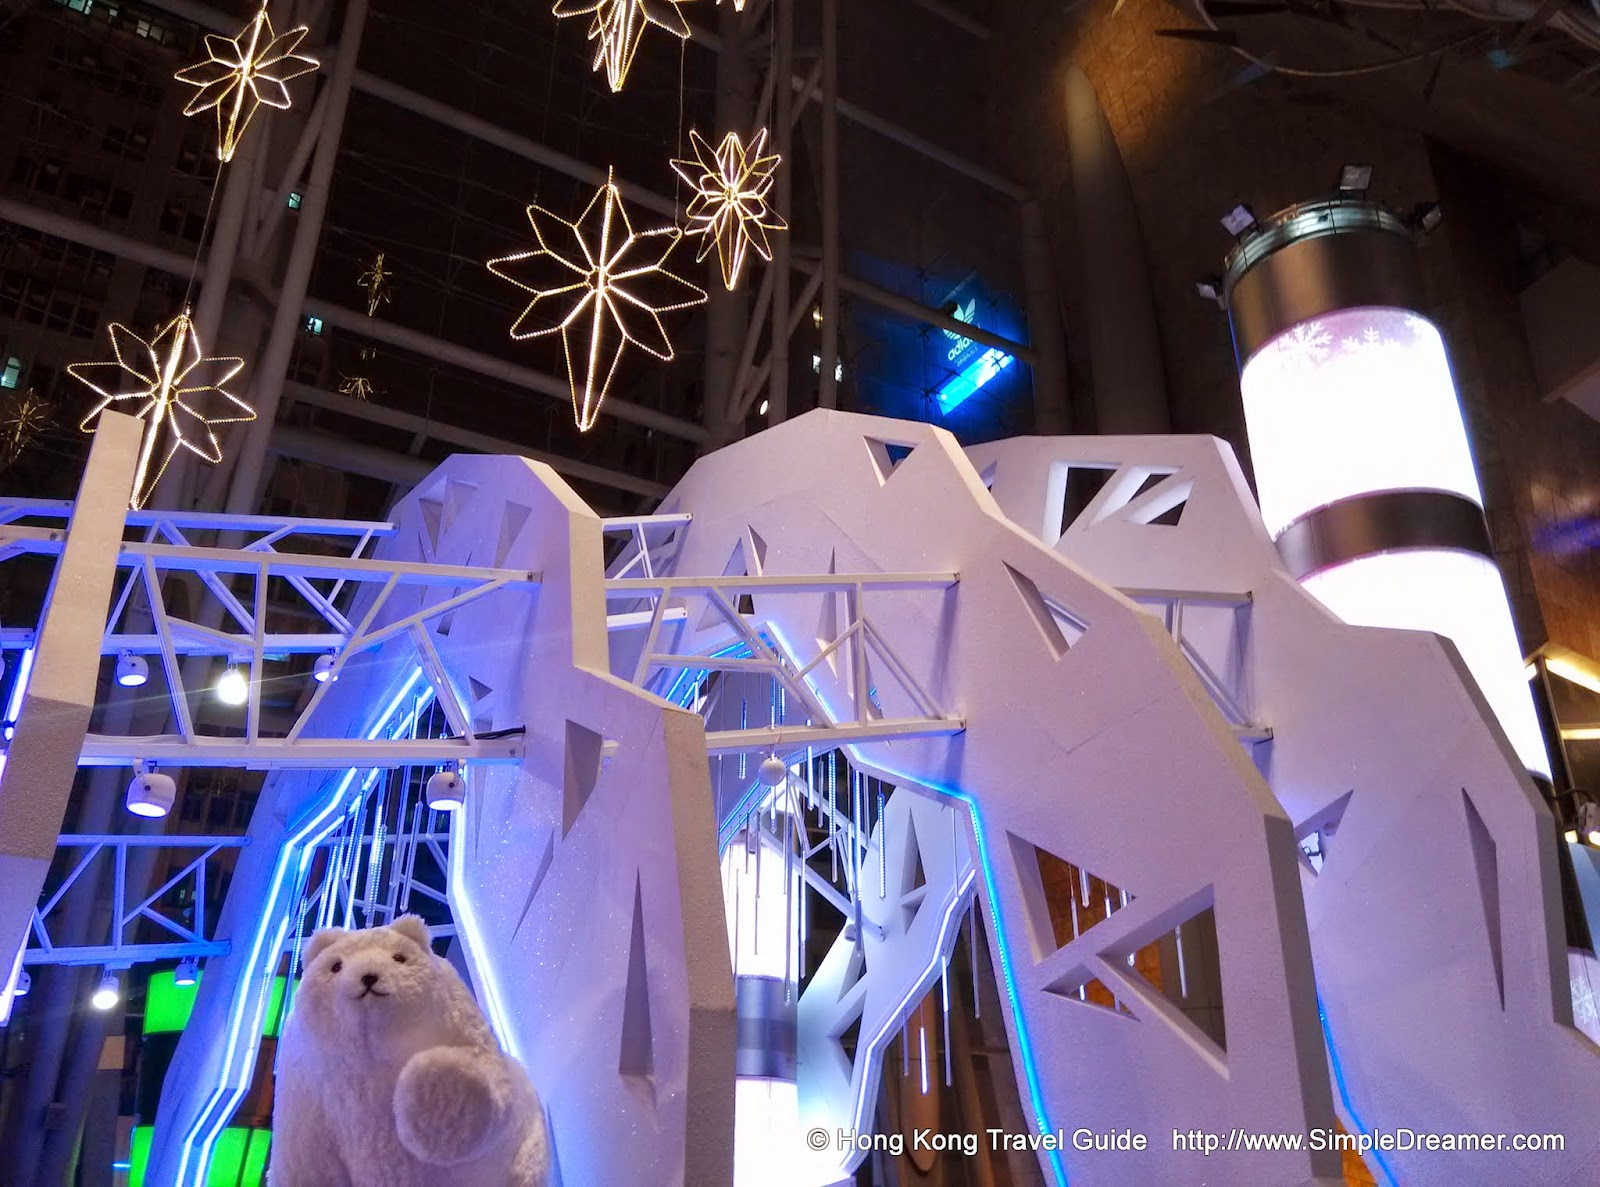 http://www.simpledreamer.com/2014/12/the-iceberg-christmas-at-langham-place.html